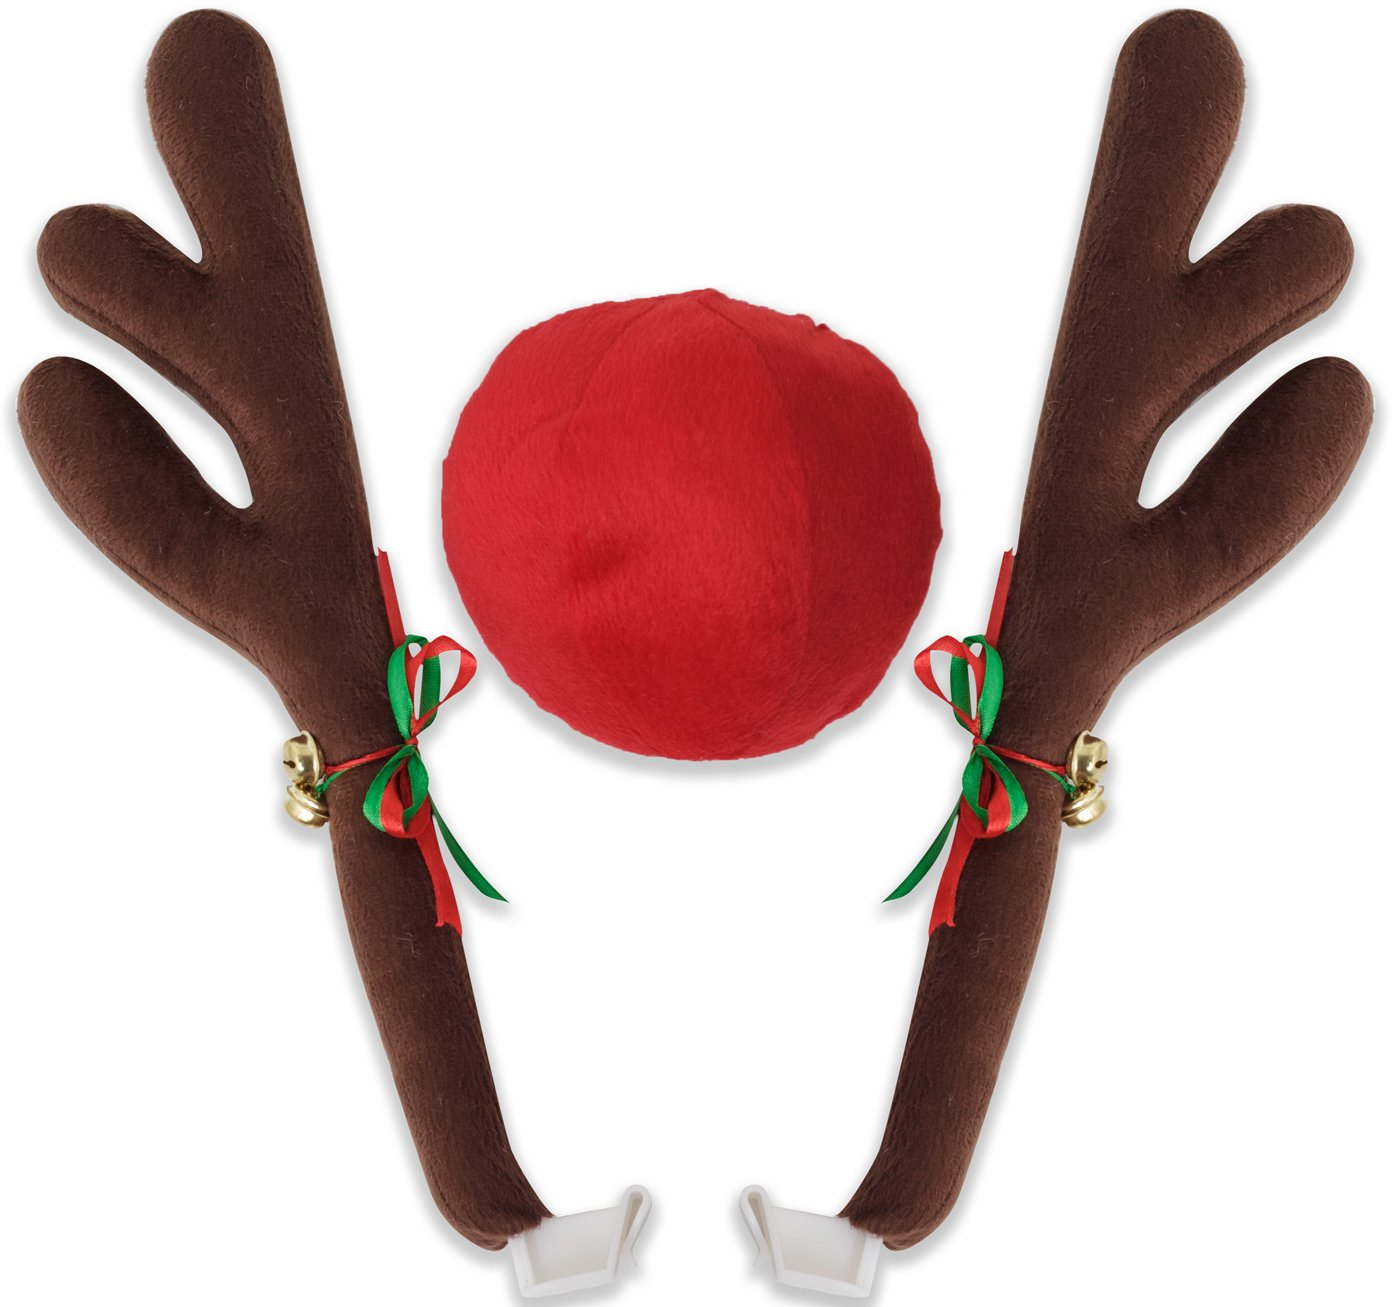 OxGord Car Reindeer Antlers & Nose - Window Roof-Top & Grille Rudolph Reindeer Jingle Bell Christmas Costume Auto Accessories WARA-01